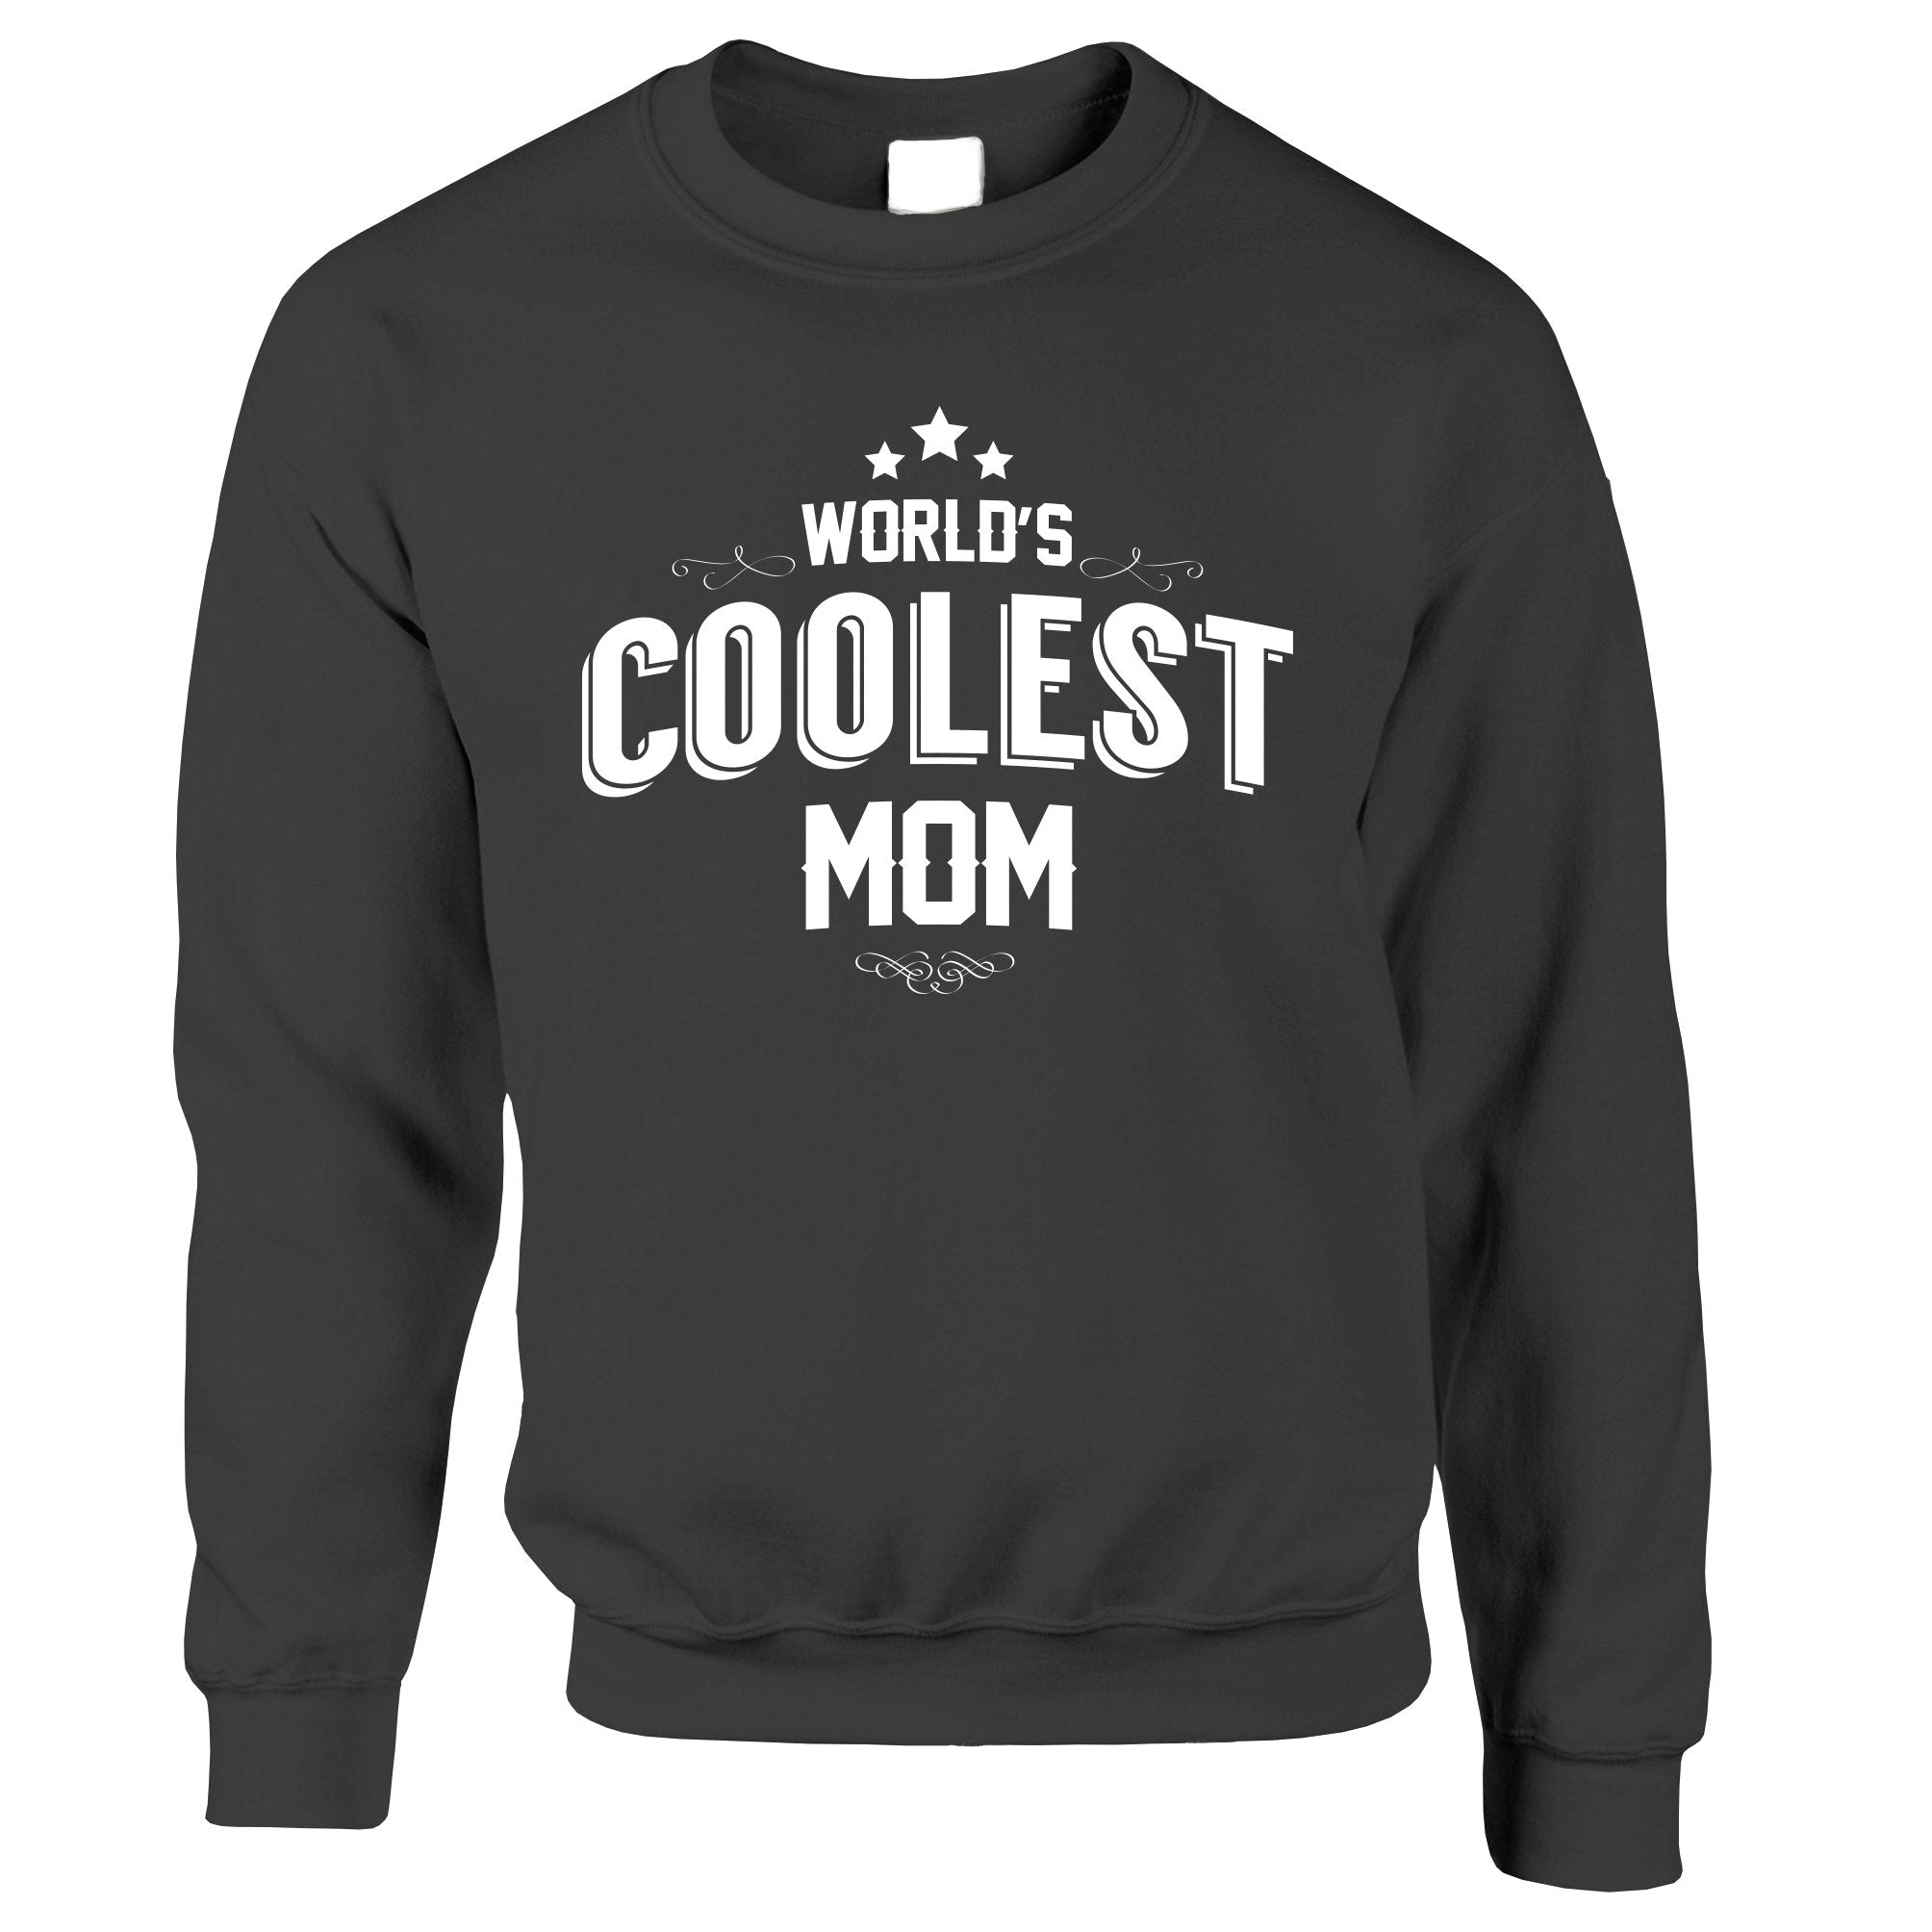 Novelty Jumper Worlds Coolest Mom Slogan Sweatshirt Sweater